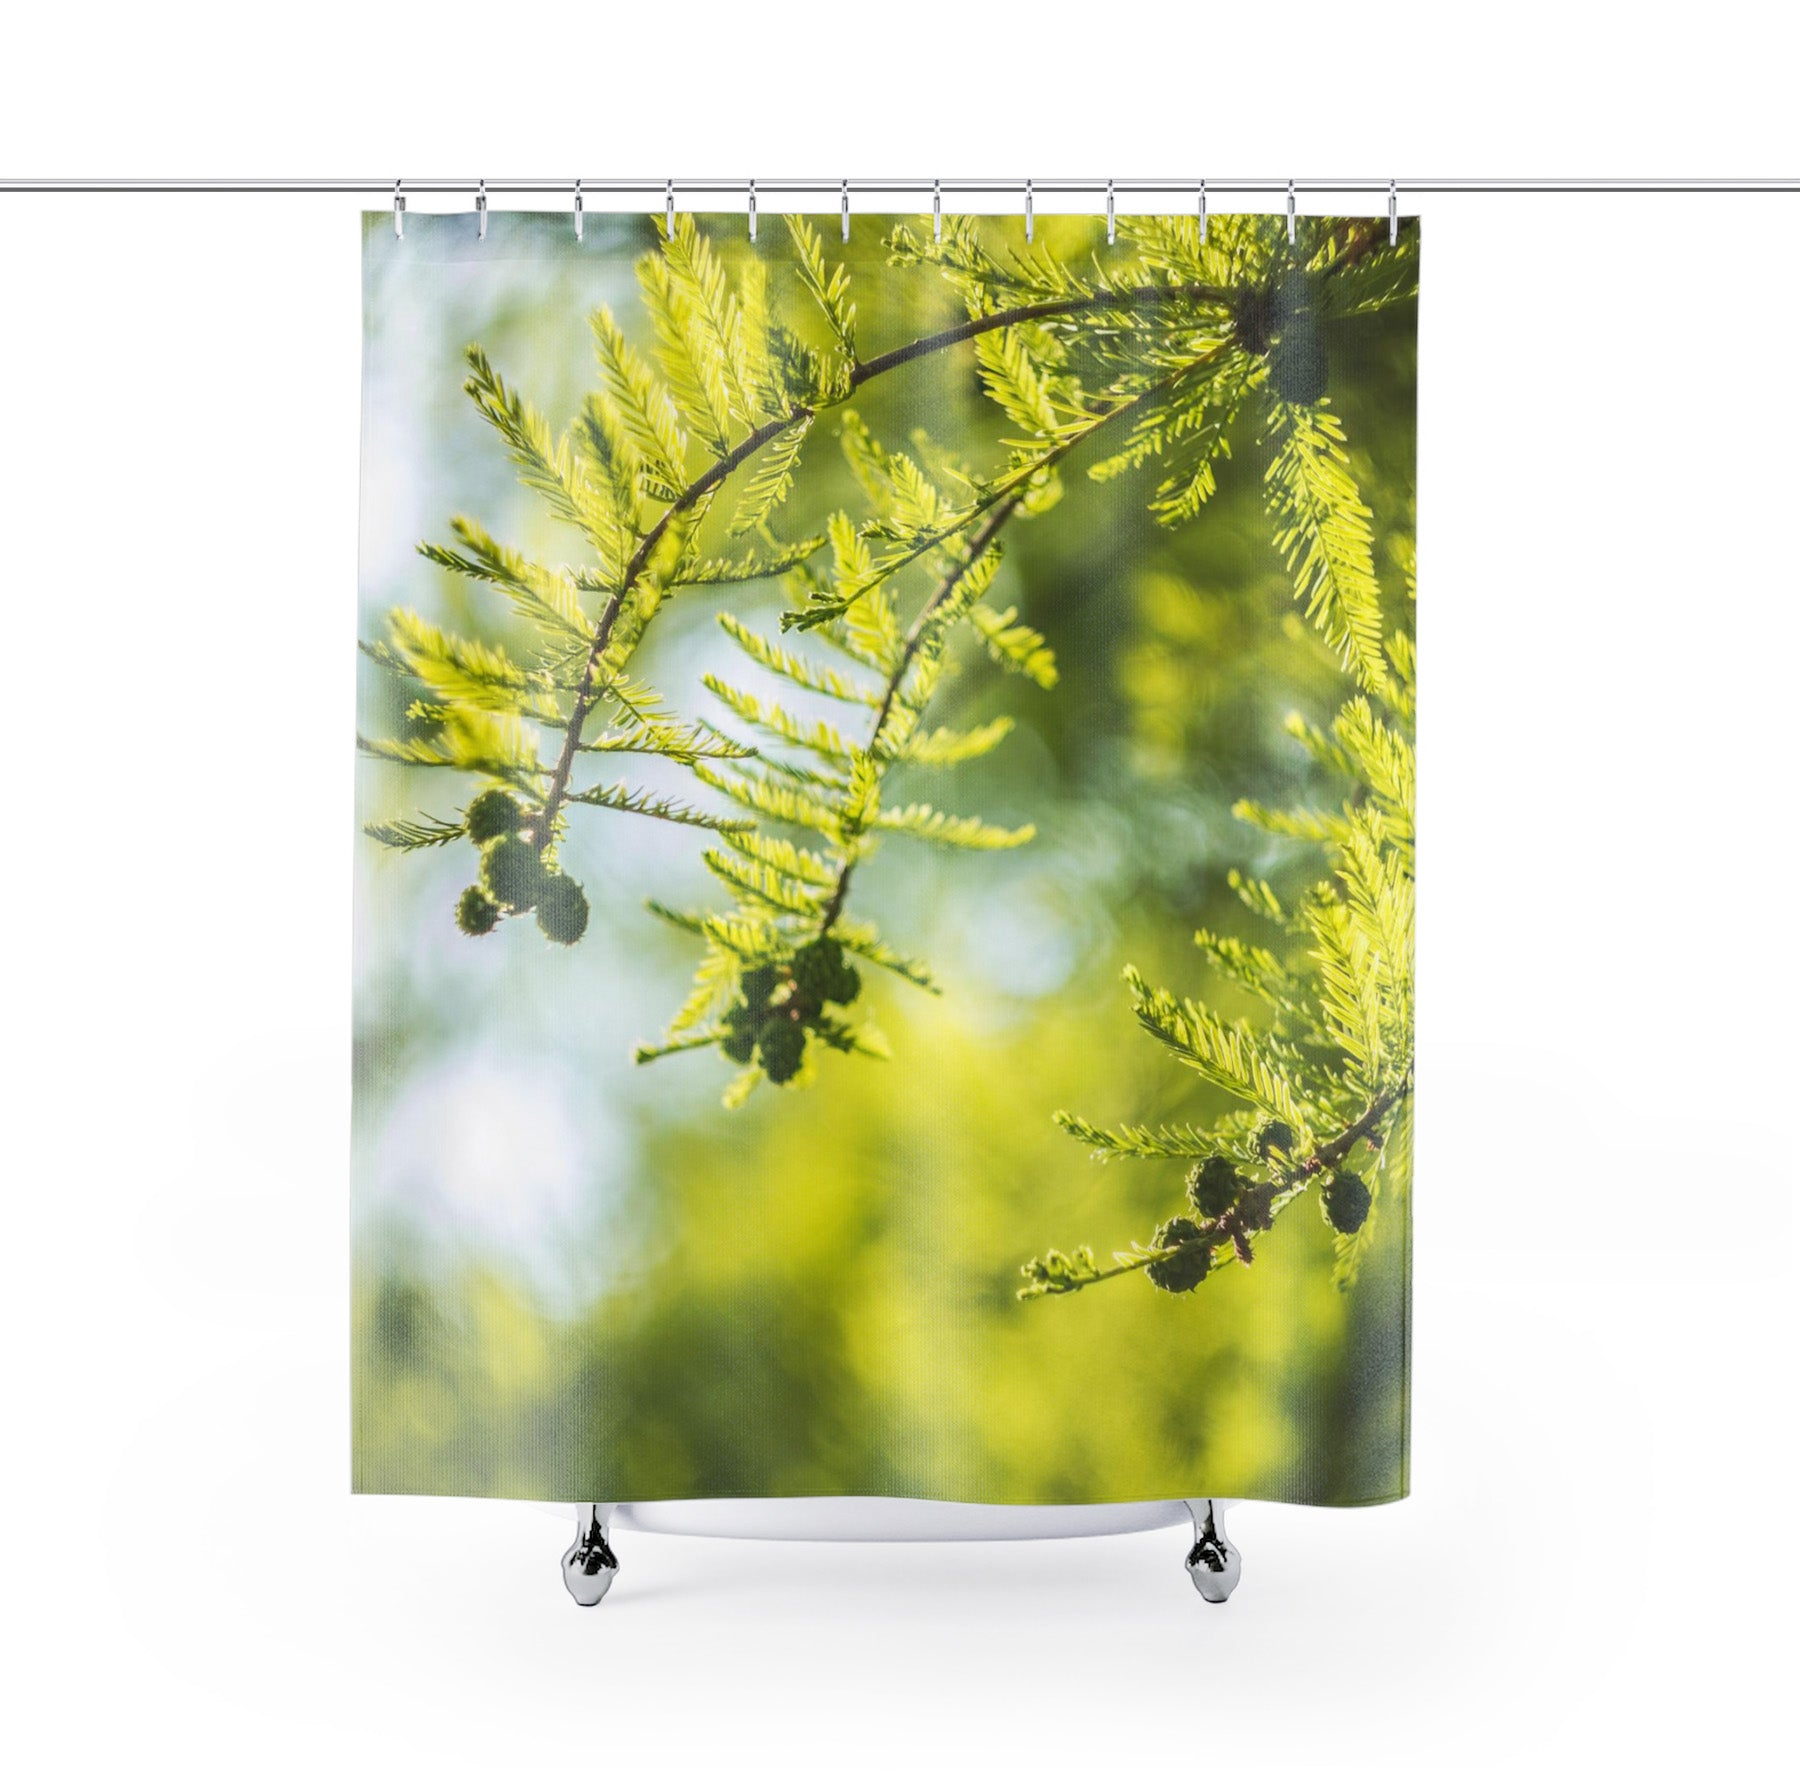 green nature shower curtain hanged